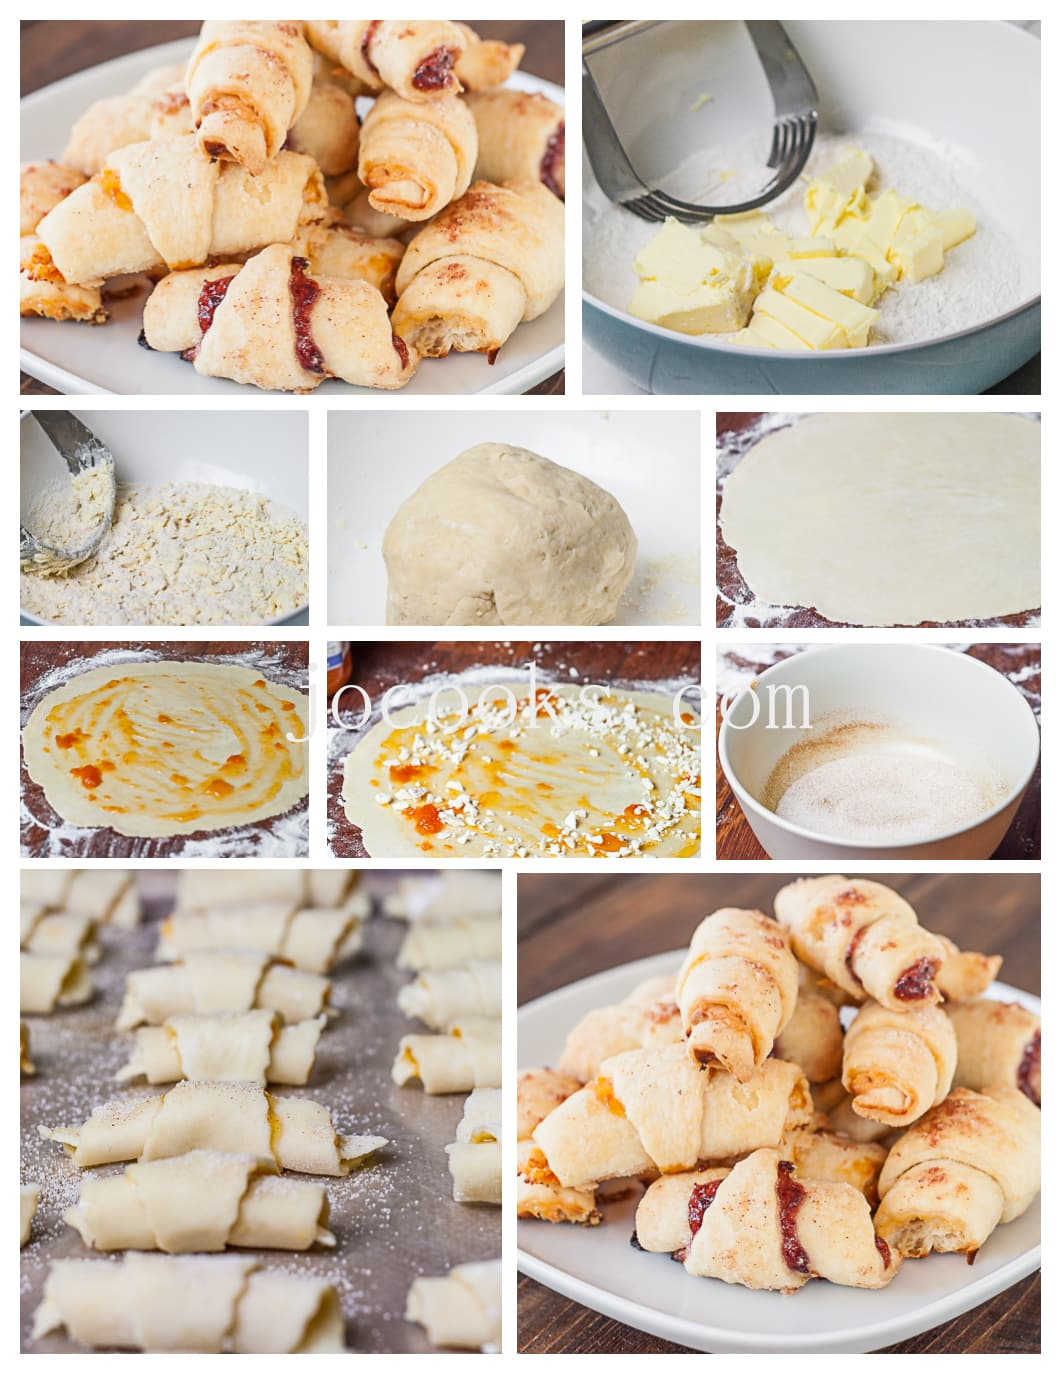 Step by step shots of the process for making white chocolate apricot rugelach cookies